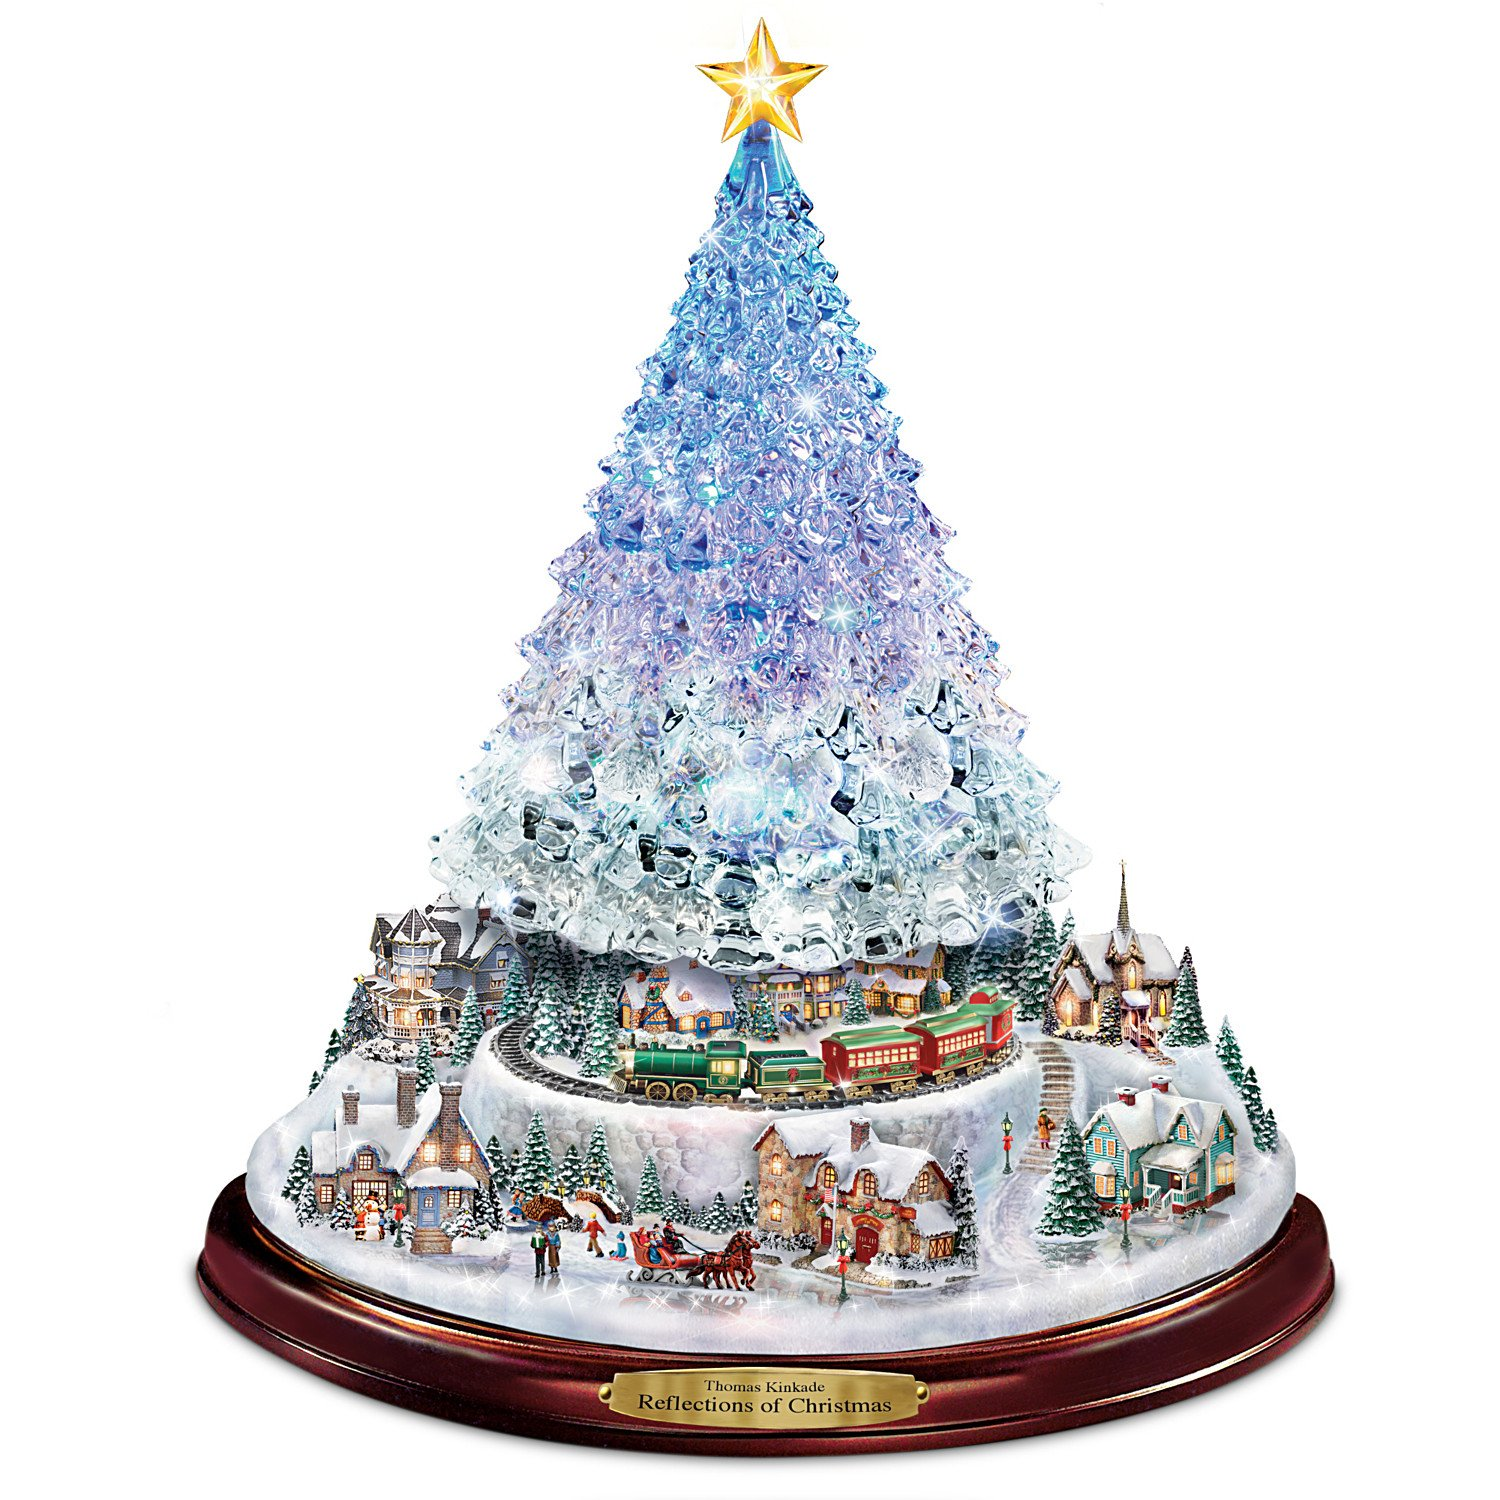 Amazon.com: Thomas Kinkade Crystal Tabletop Christmas Tree: Lights ...